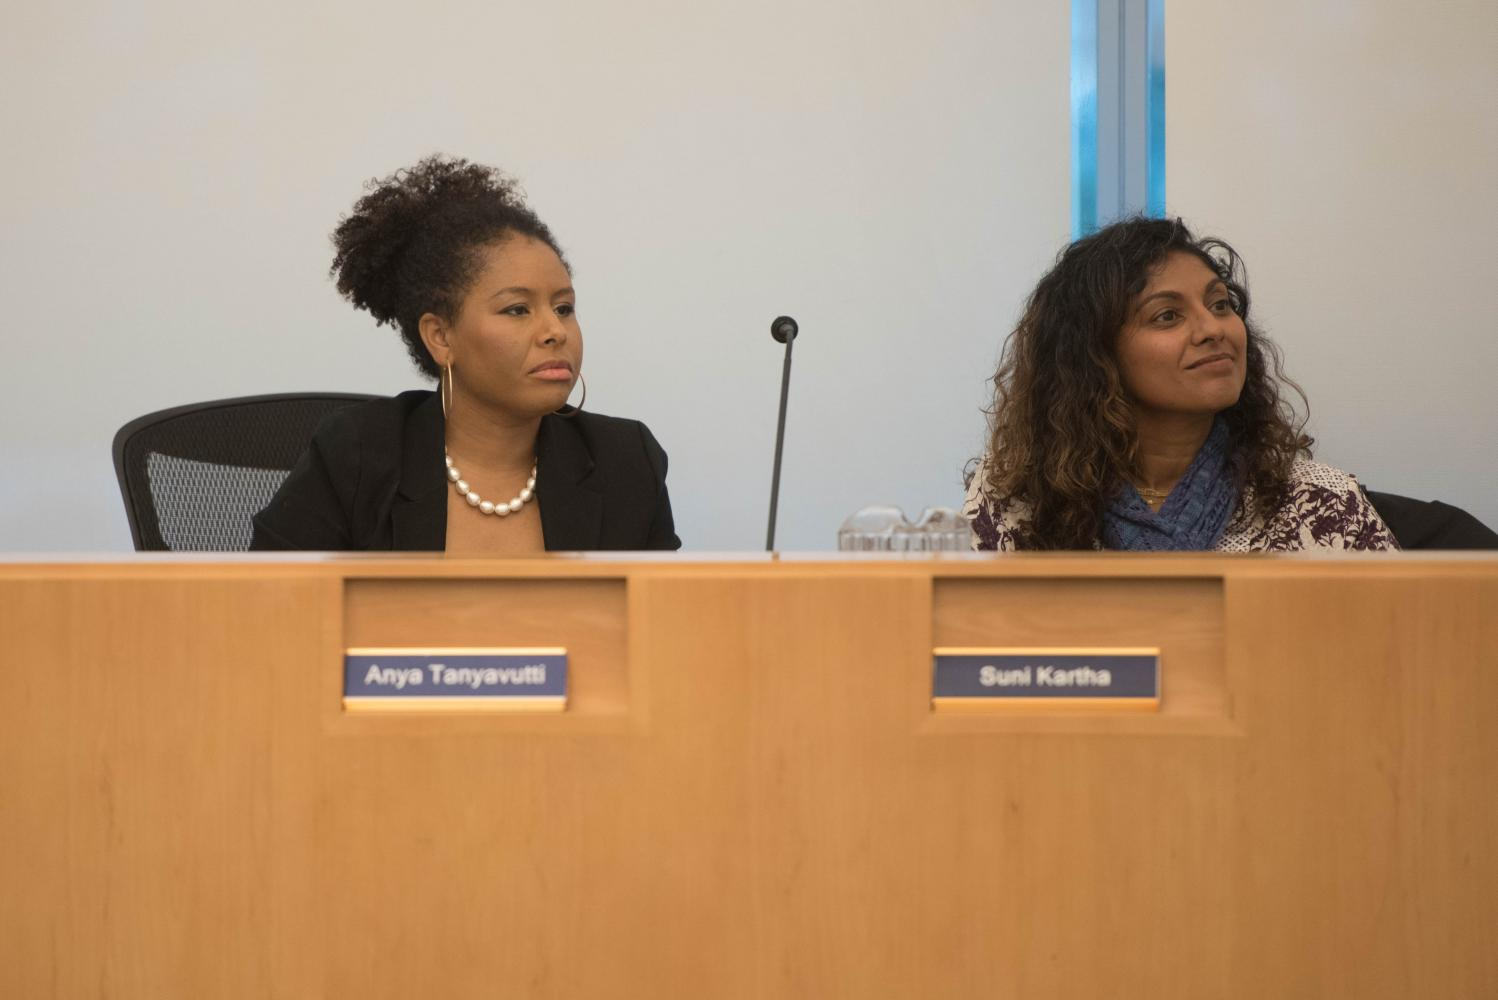 Evanston/Skokie District 65 school board vice president Anya Tanyavutti and president Suni Kartha watch a speaker at a board meeting. Tanyavutti and Kartha both voted in favor of the algebra consolidation plan Monday, which passed 5-1.